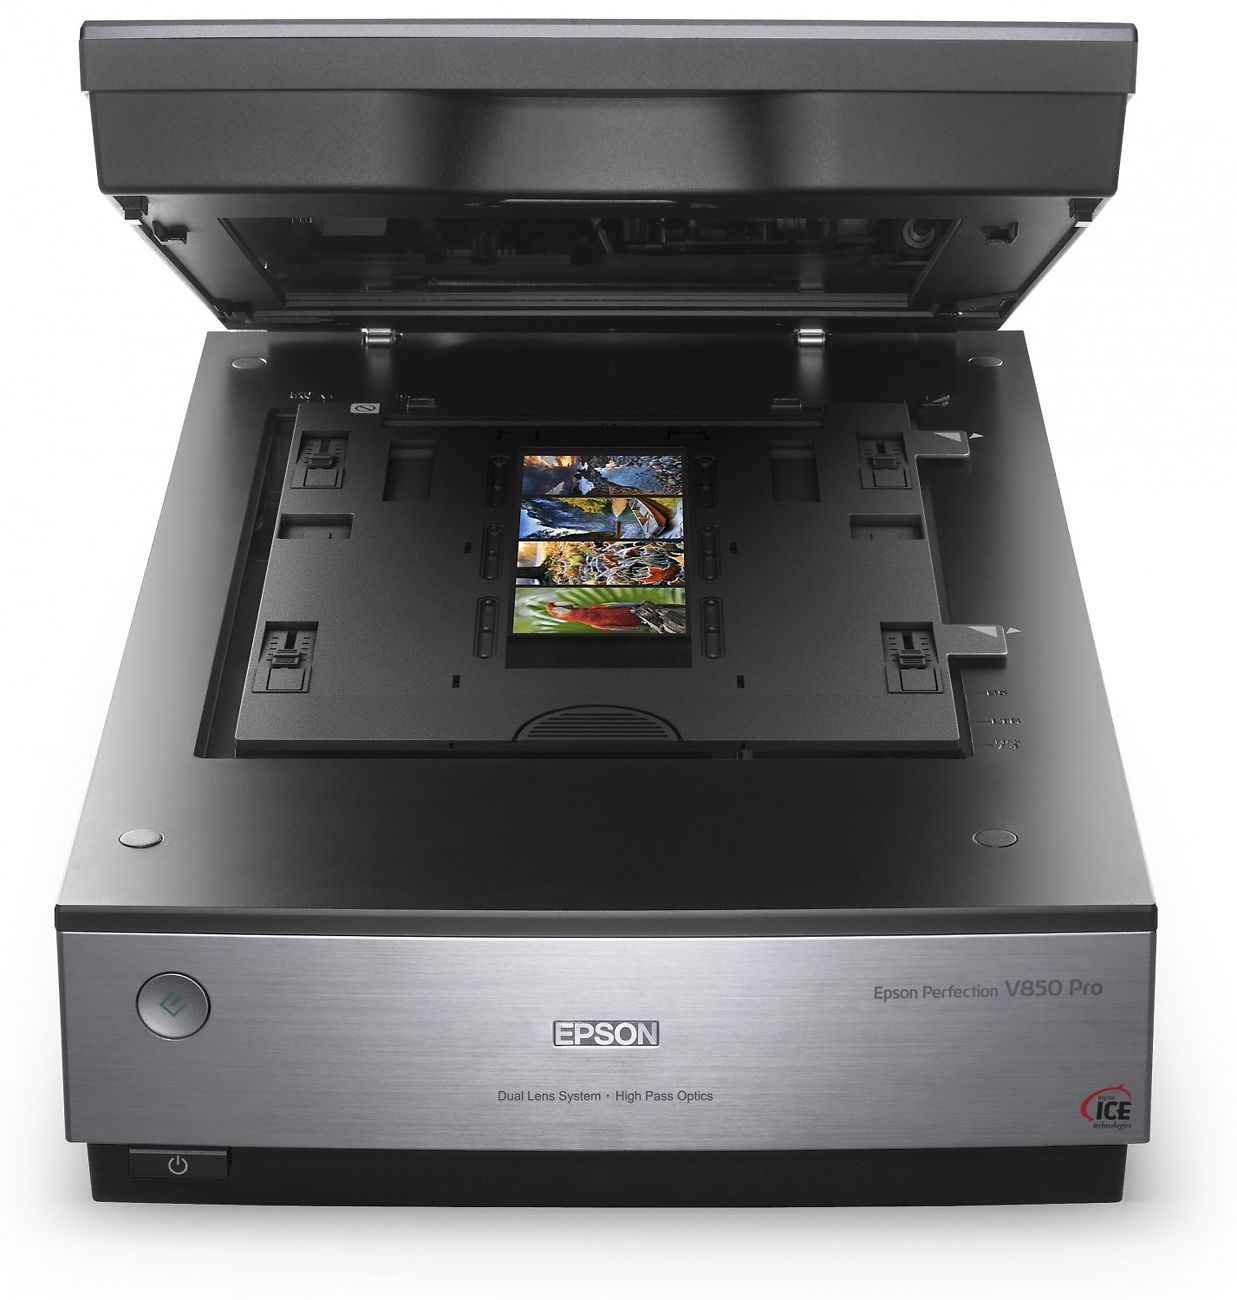 Epson Perfection V850 Pro Scanner Image